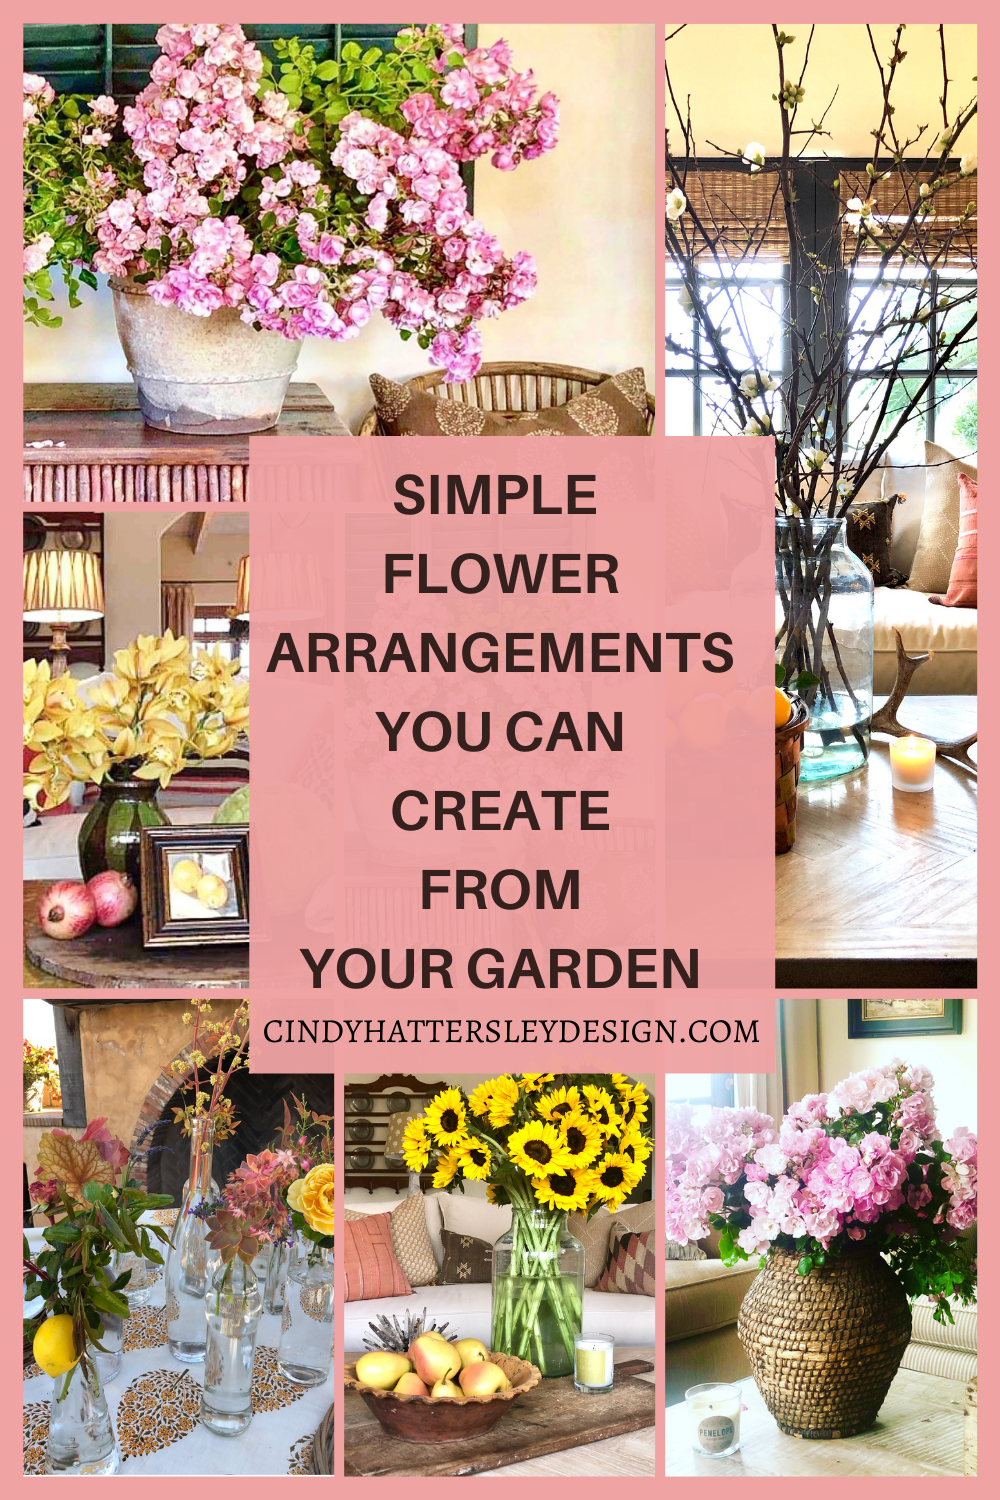 SIMPLE FLOWER ARRANGEMENTS you can create from your garden